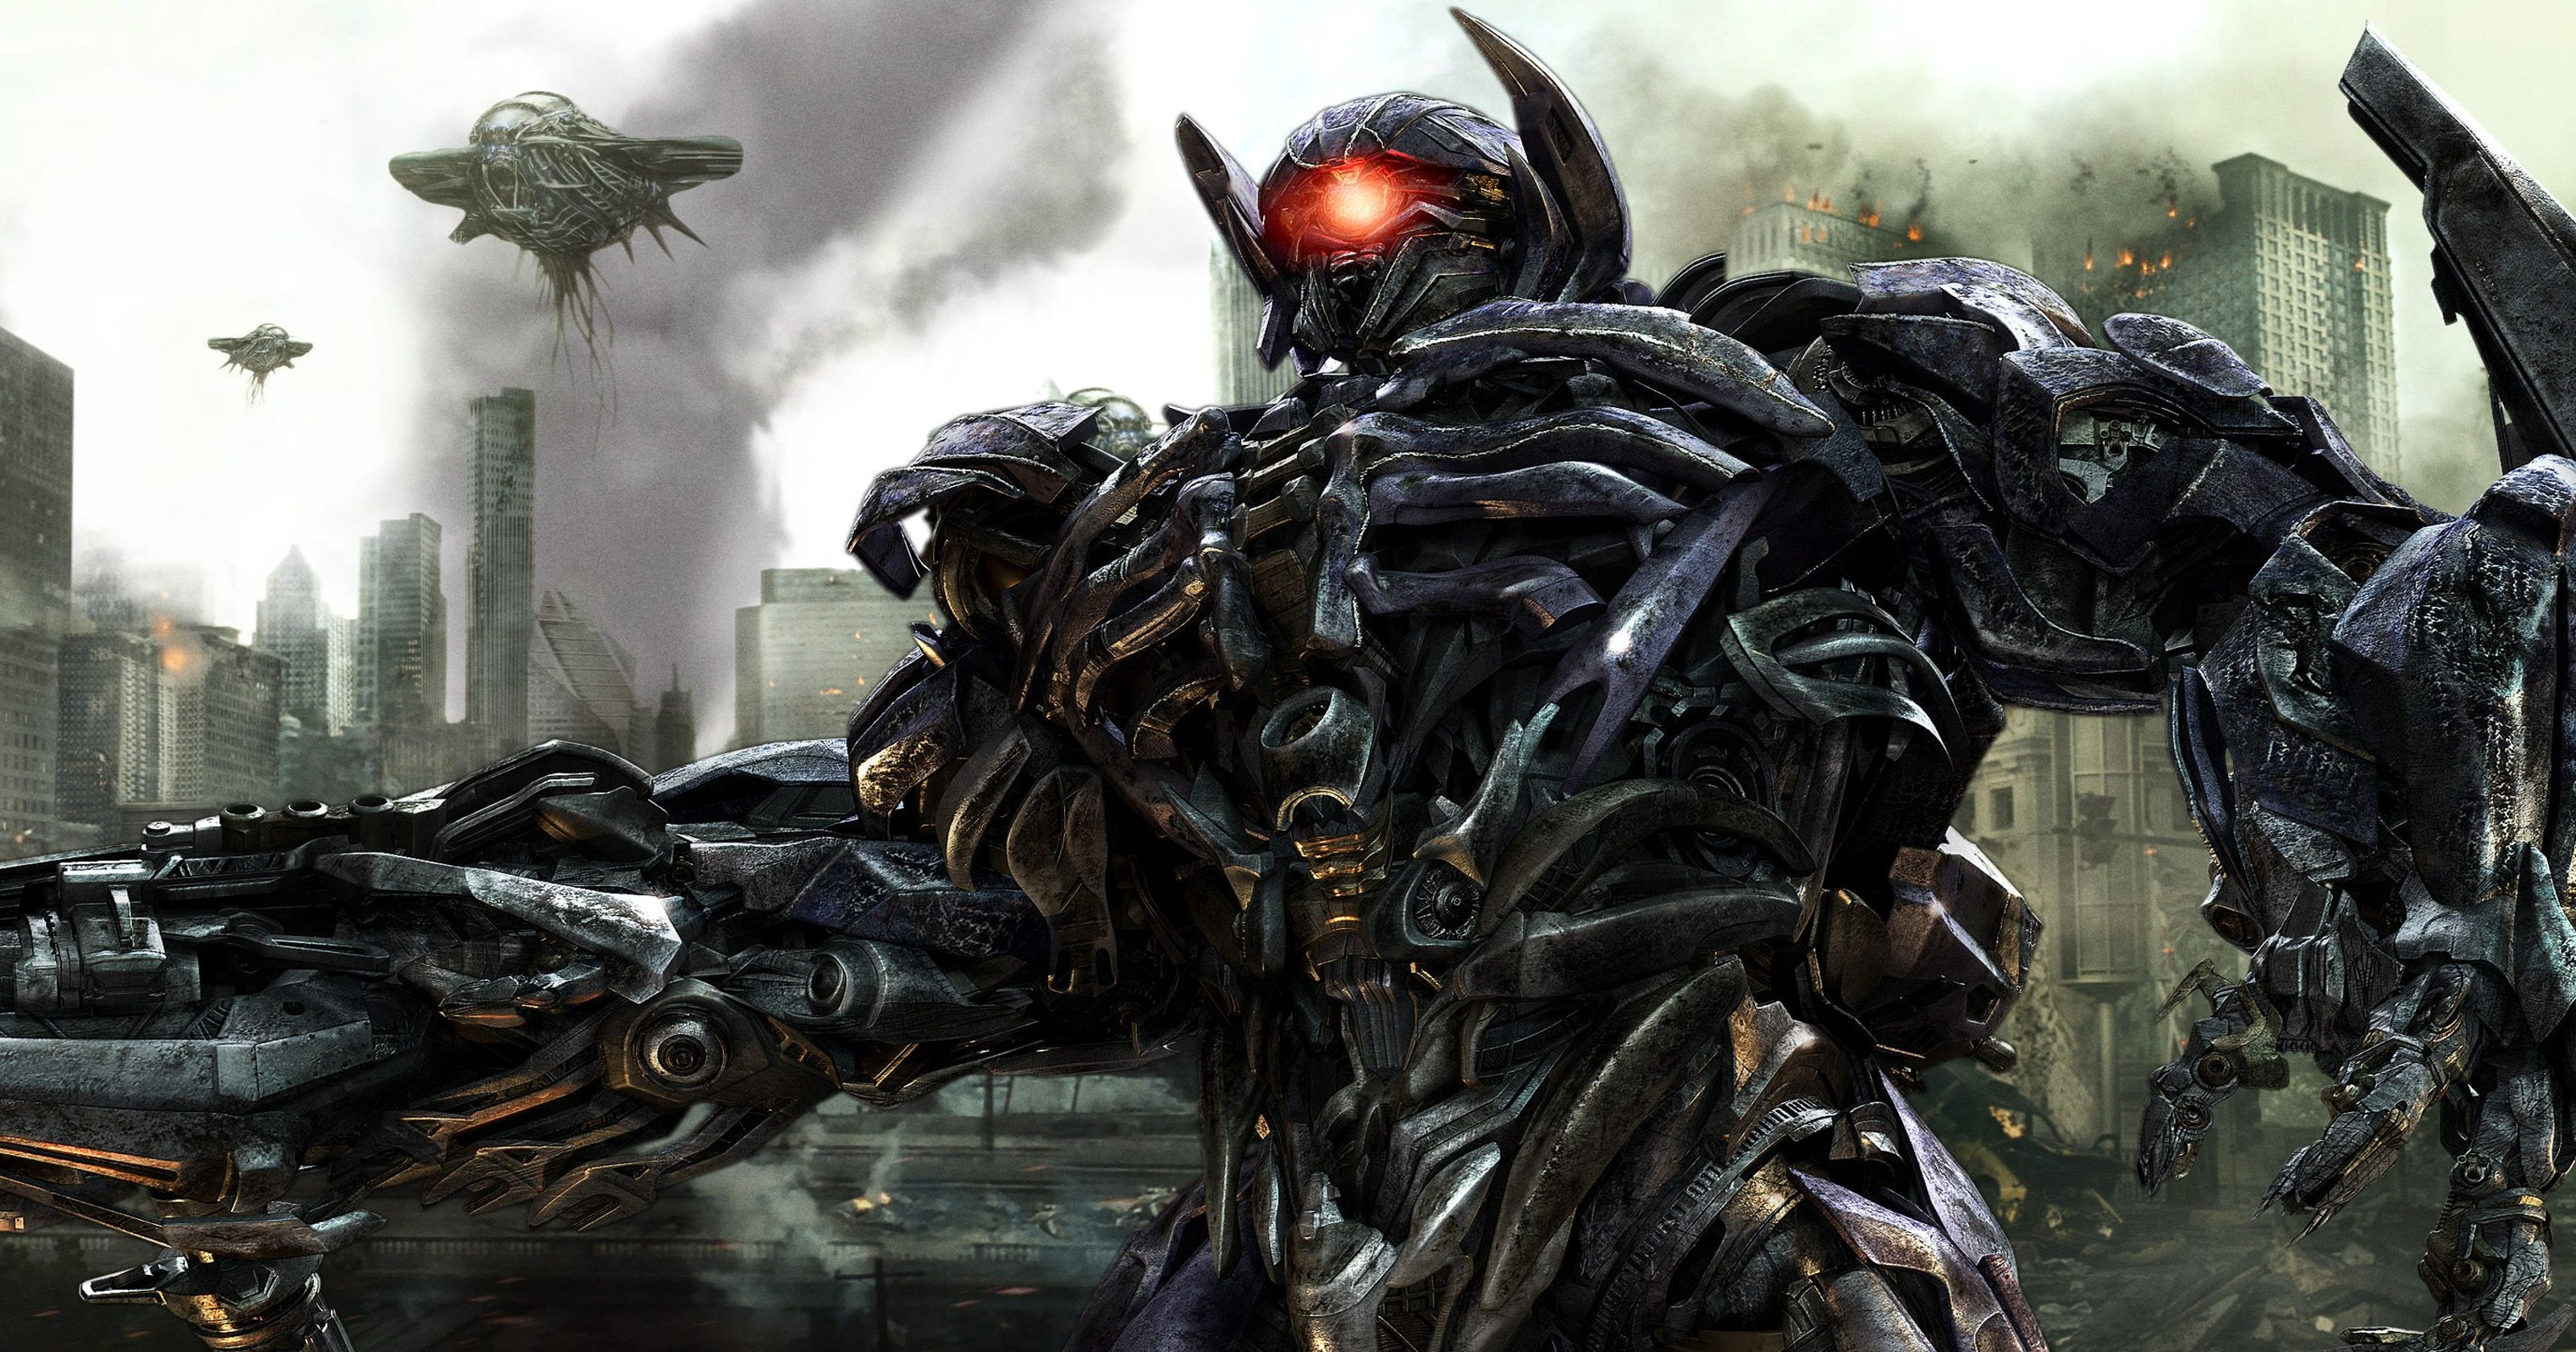 39 transformers 39 all six movies including 39 last knight 39 ranked. Black Bedroom Furniture Sets. Home Design Ideas